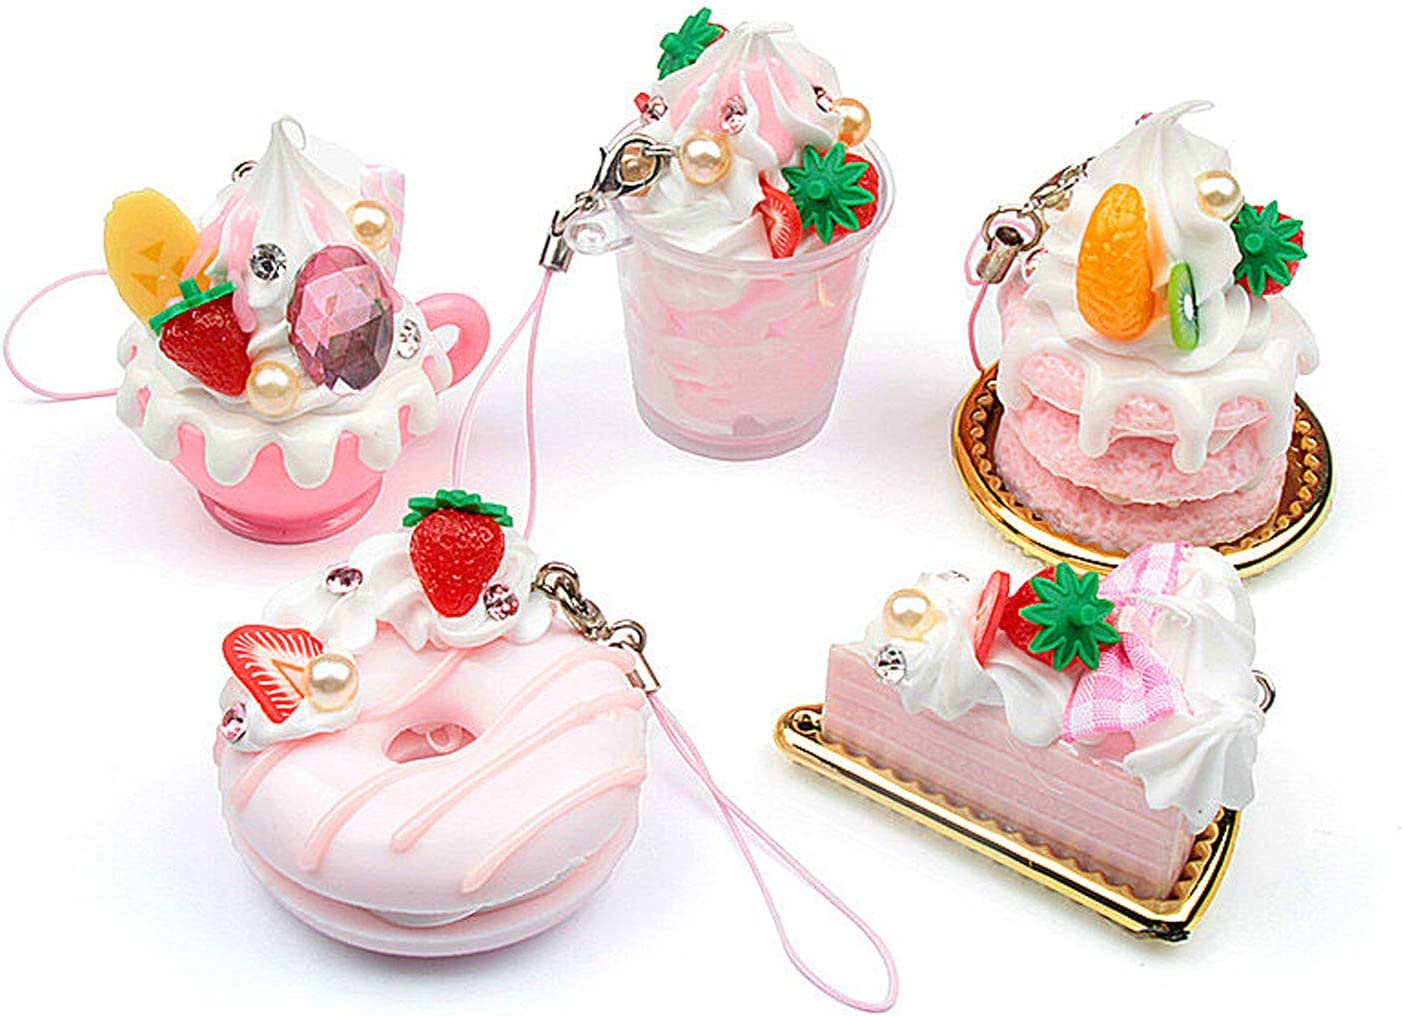 Dreamm Artificial Fake Desserts Cake Model Assortment Simulation Fruit Ice Cream Doughnut Pendant Mixed Dollhouse Play Food Kitchen Toy Accessories 5 Pieces